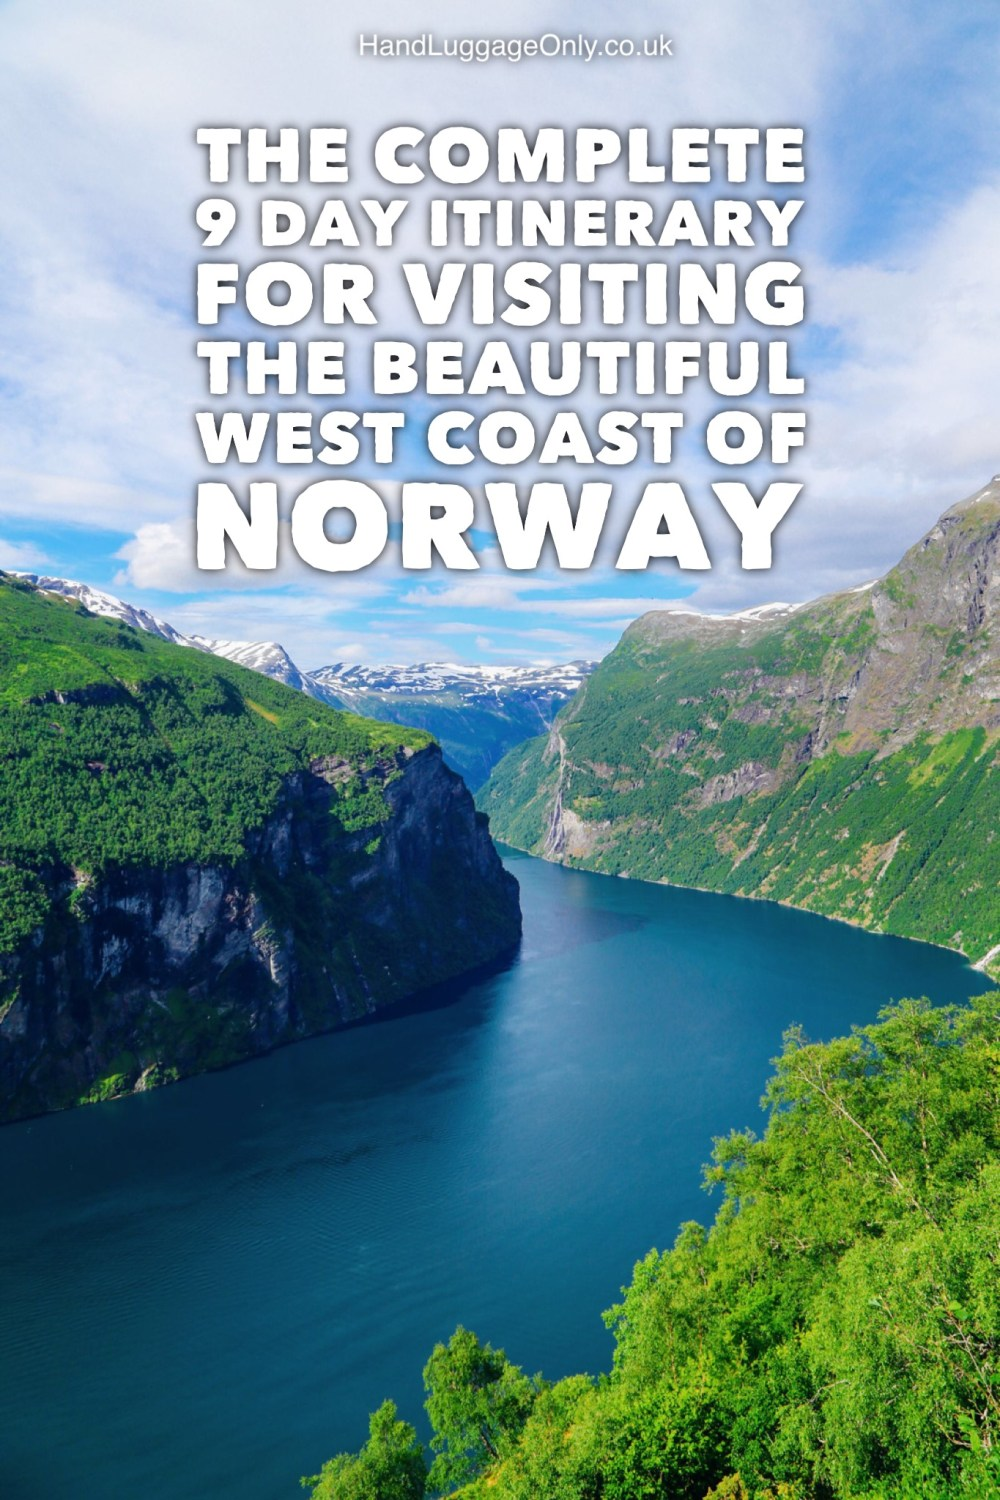 The Ultimate 9 Day Itinerary For Exploring Norway's Beautiful & Rugged West Coast